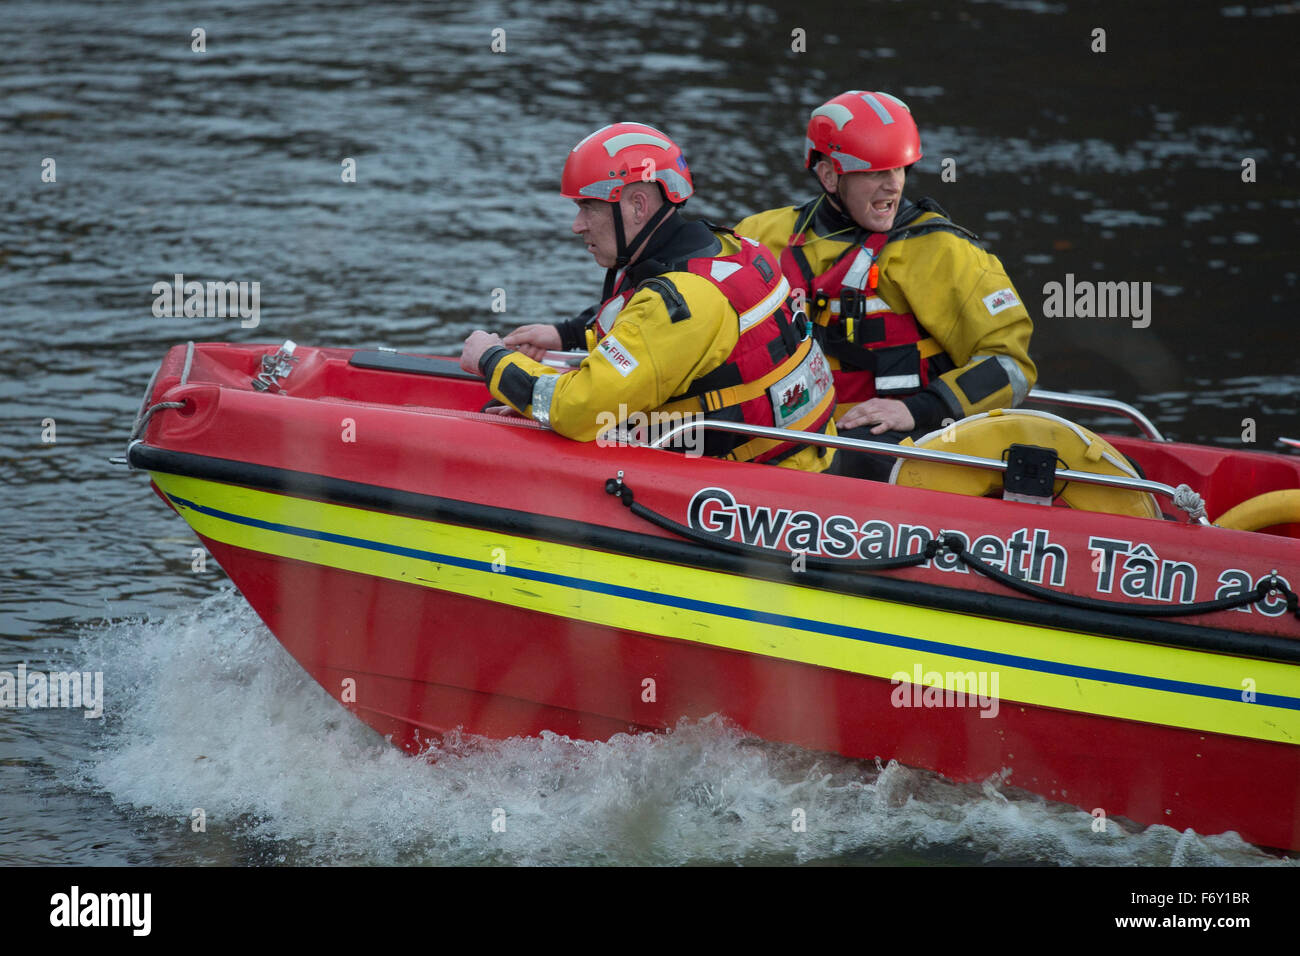 A South Wales Fire and Rescue team use a speed boat to search for a person seen entering the River Taff in Cardiff, - Stock Image